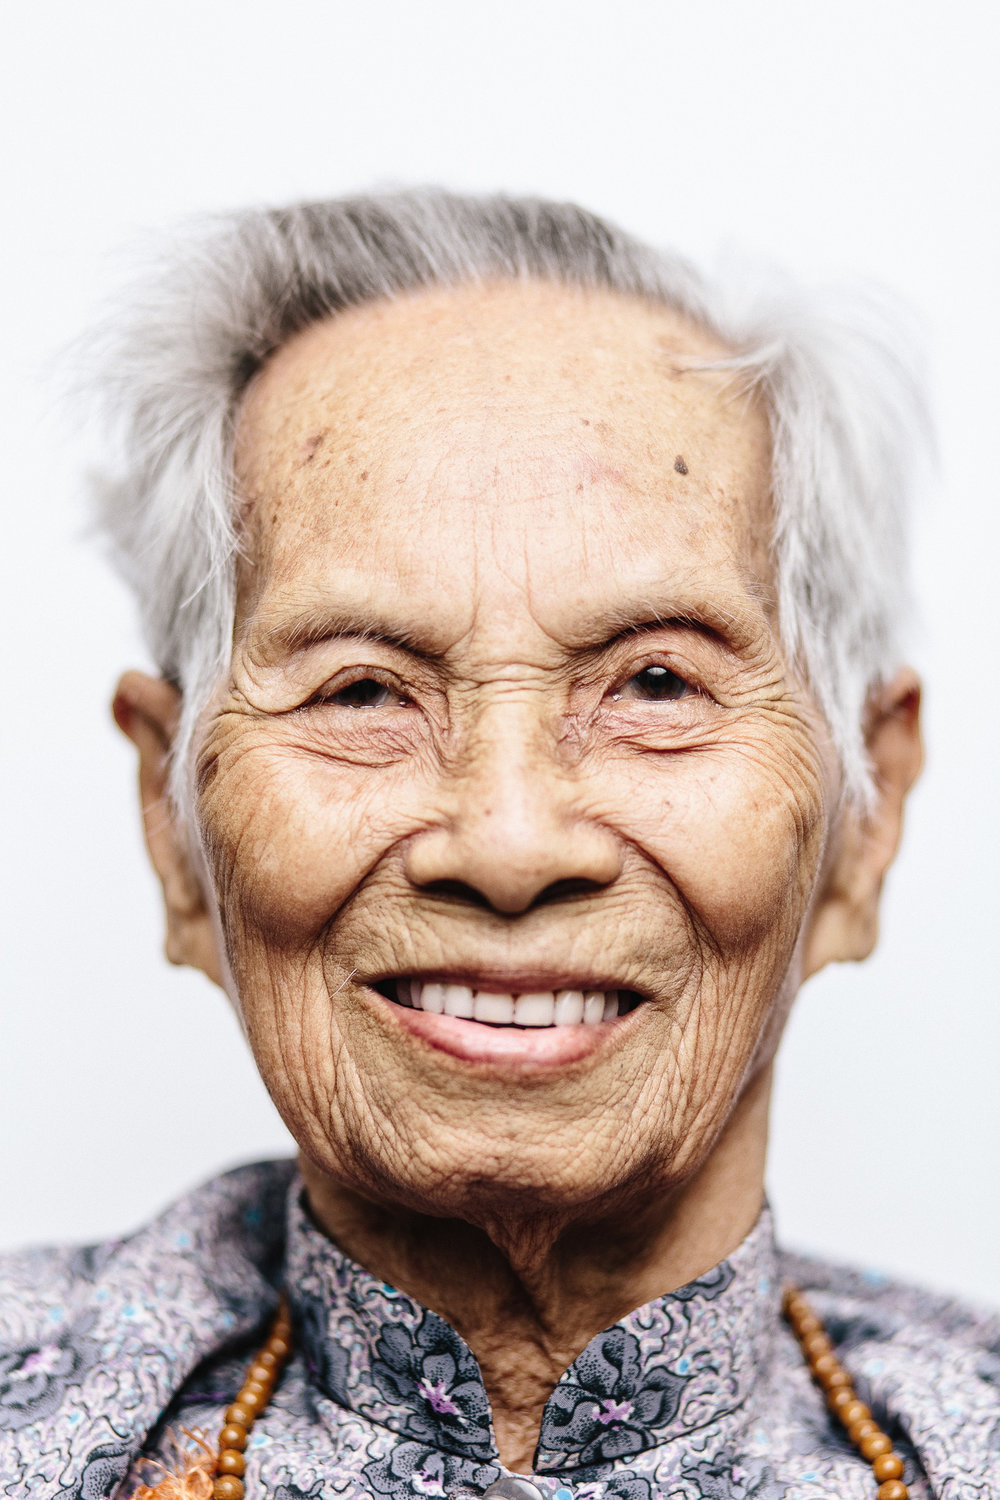 zainal-zainal-studio-centenarians-care-duke-nus-singapore-photographer-09.jpg